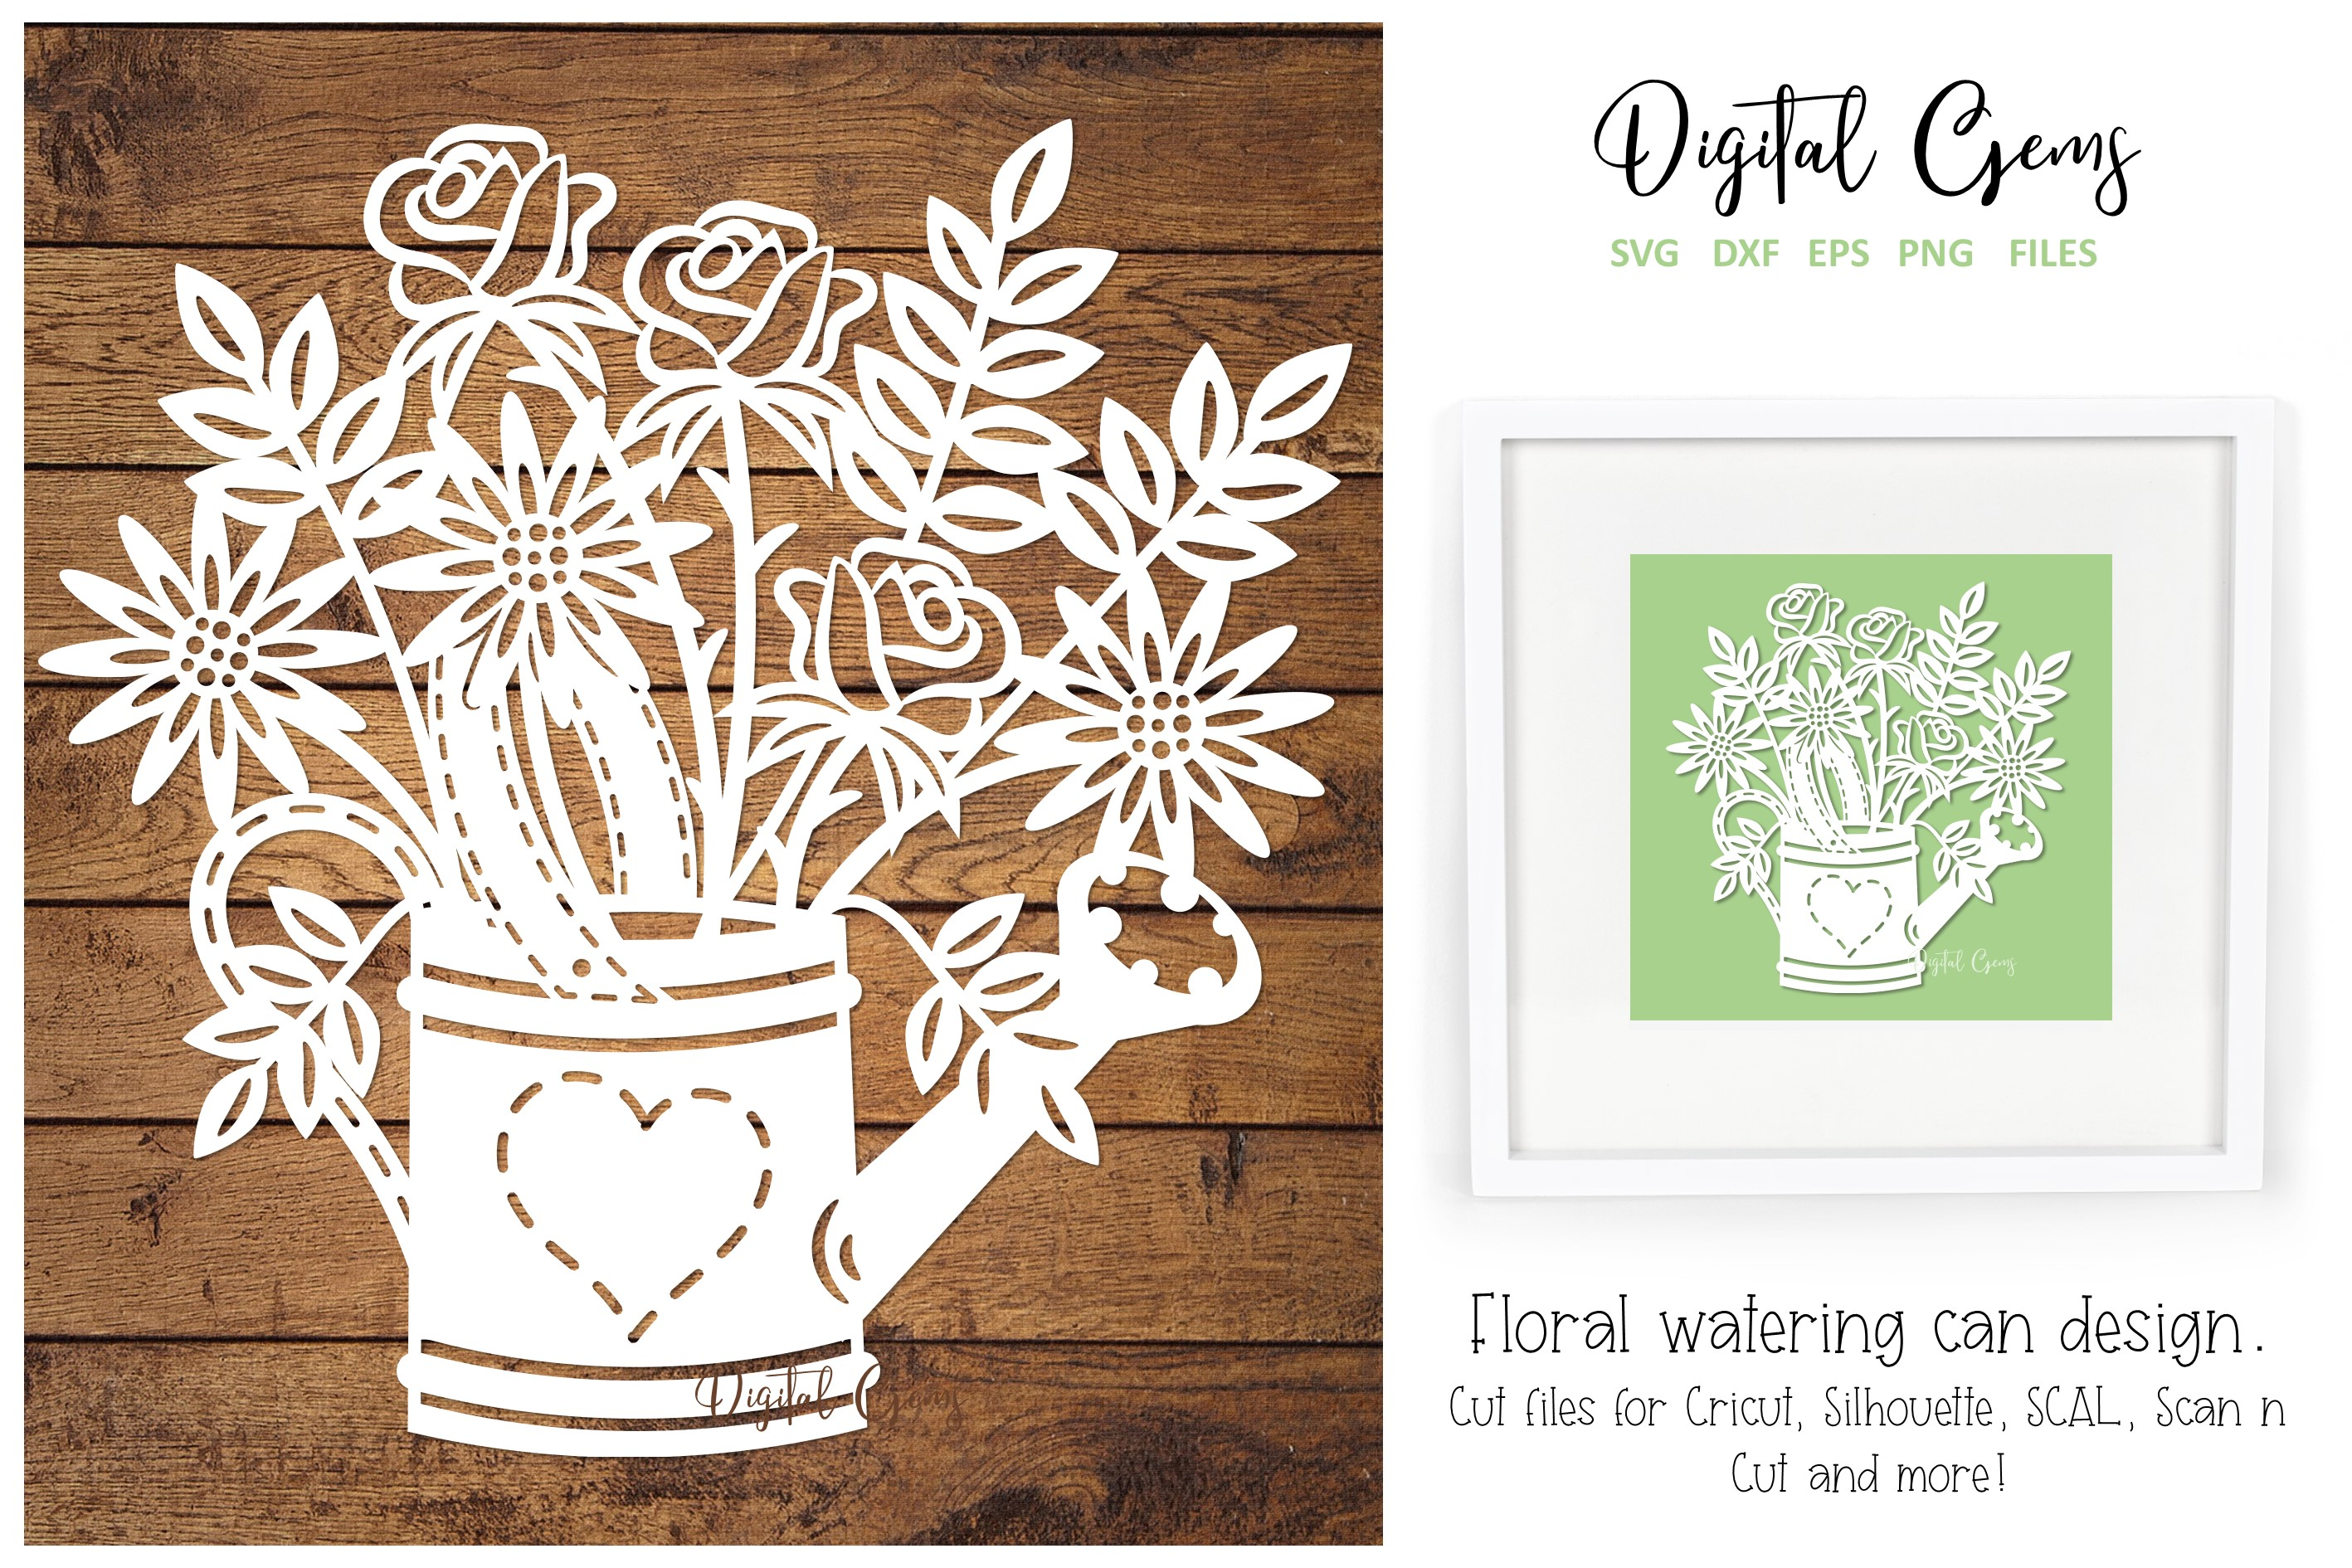 Download Free Watering Can With Flowers Design Graphic By Digital Gems for Cricut Explore, Silhouette and other cutting machines.